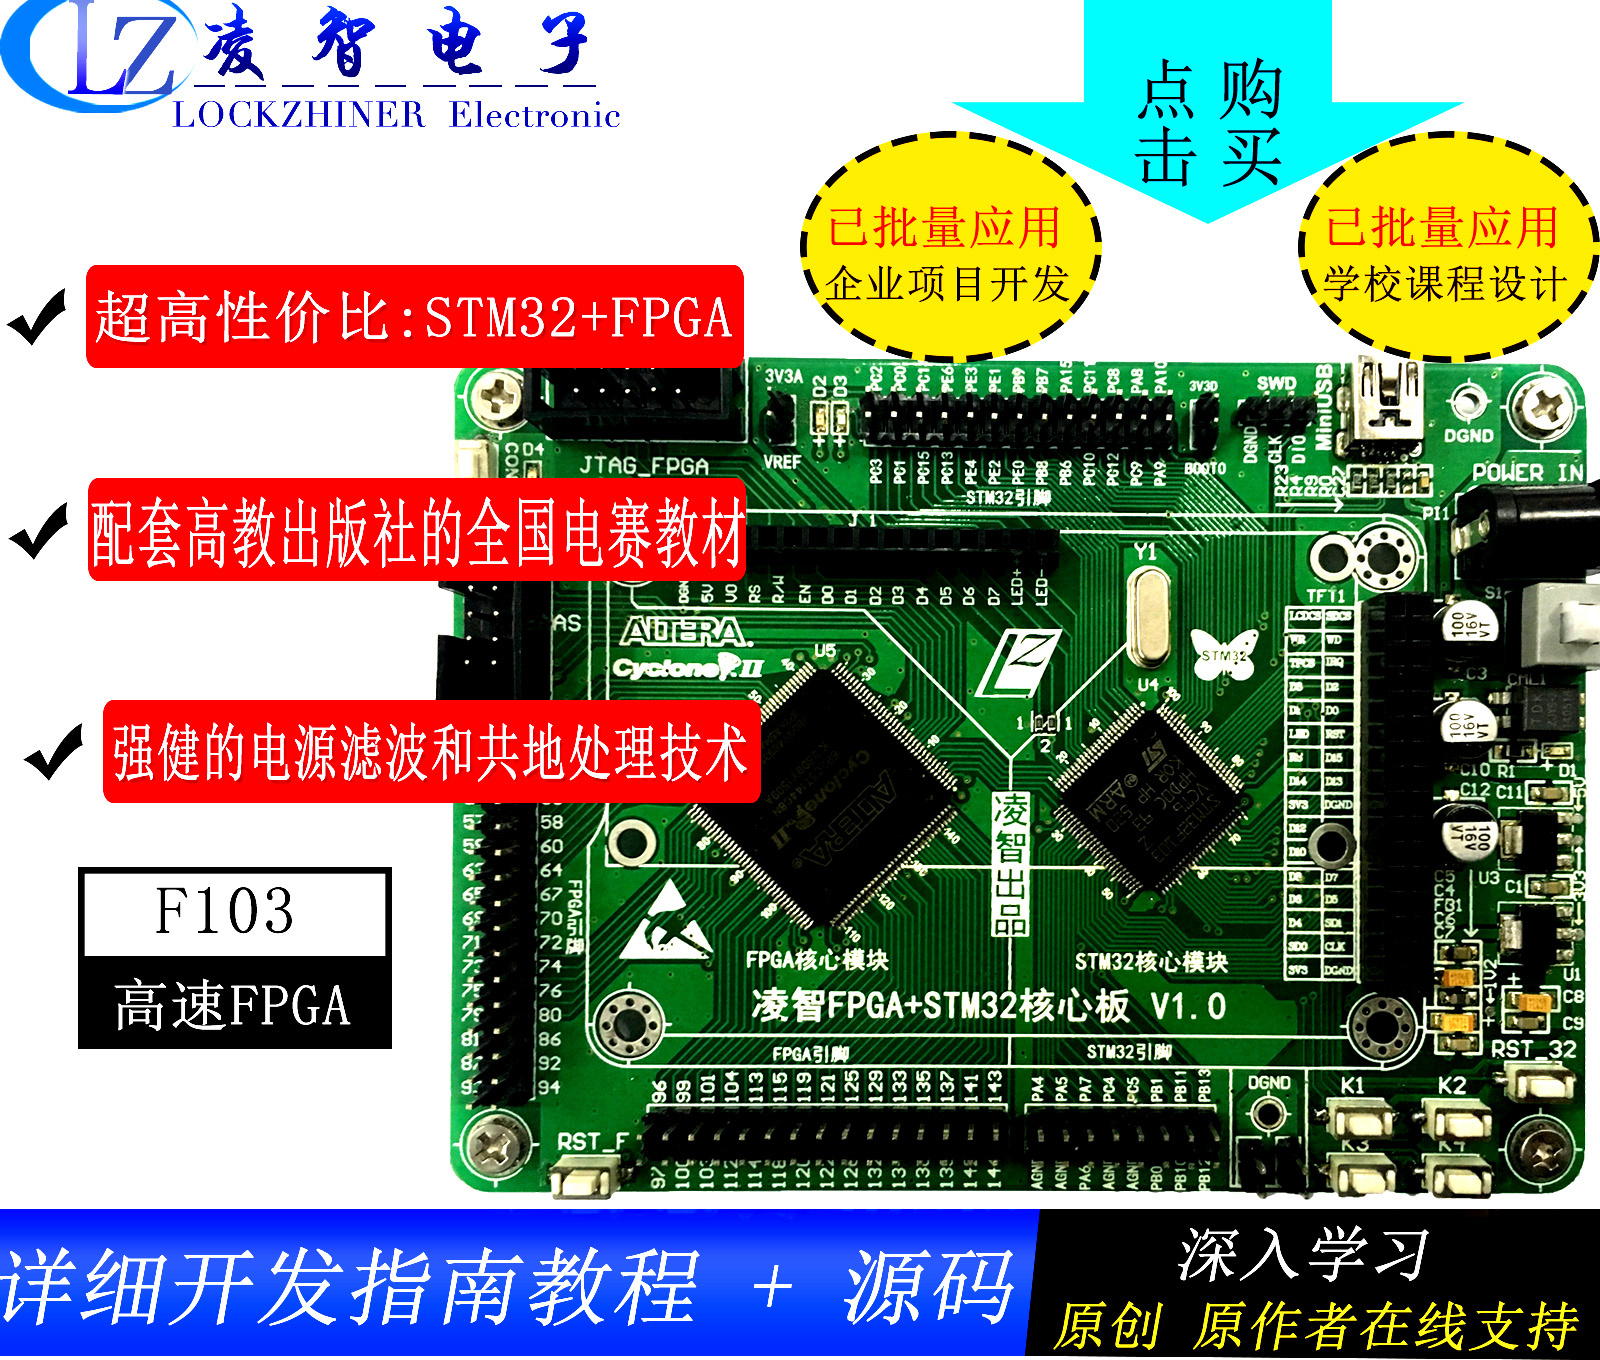 Electronic System Design: STM32 Development Board FPGA Development Board STM32F103VCT6+FPGA Core Board electronic system design fpga development board stm32f103vct6 development board high speed ad da comparator